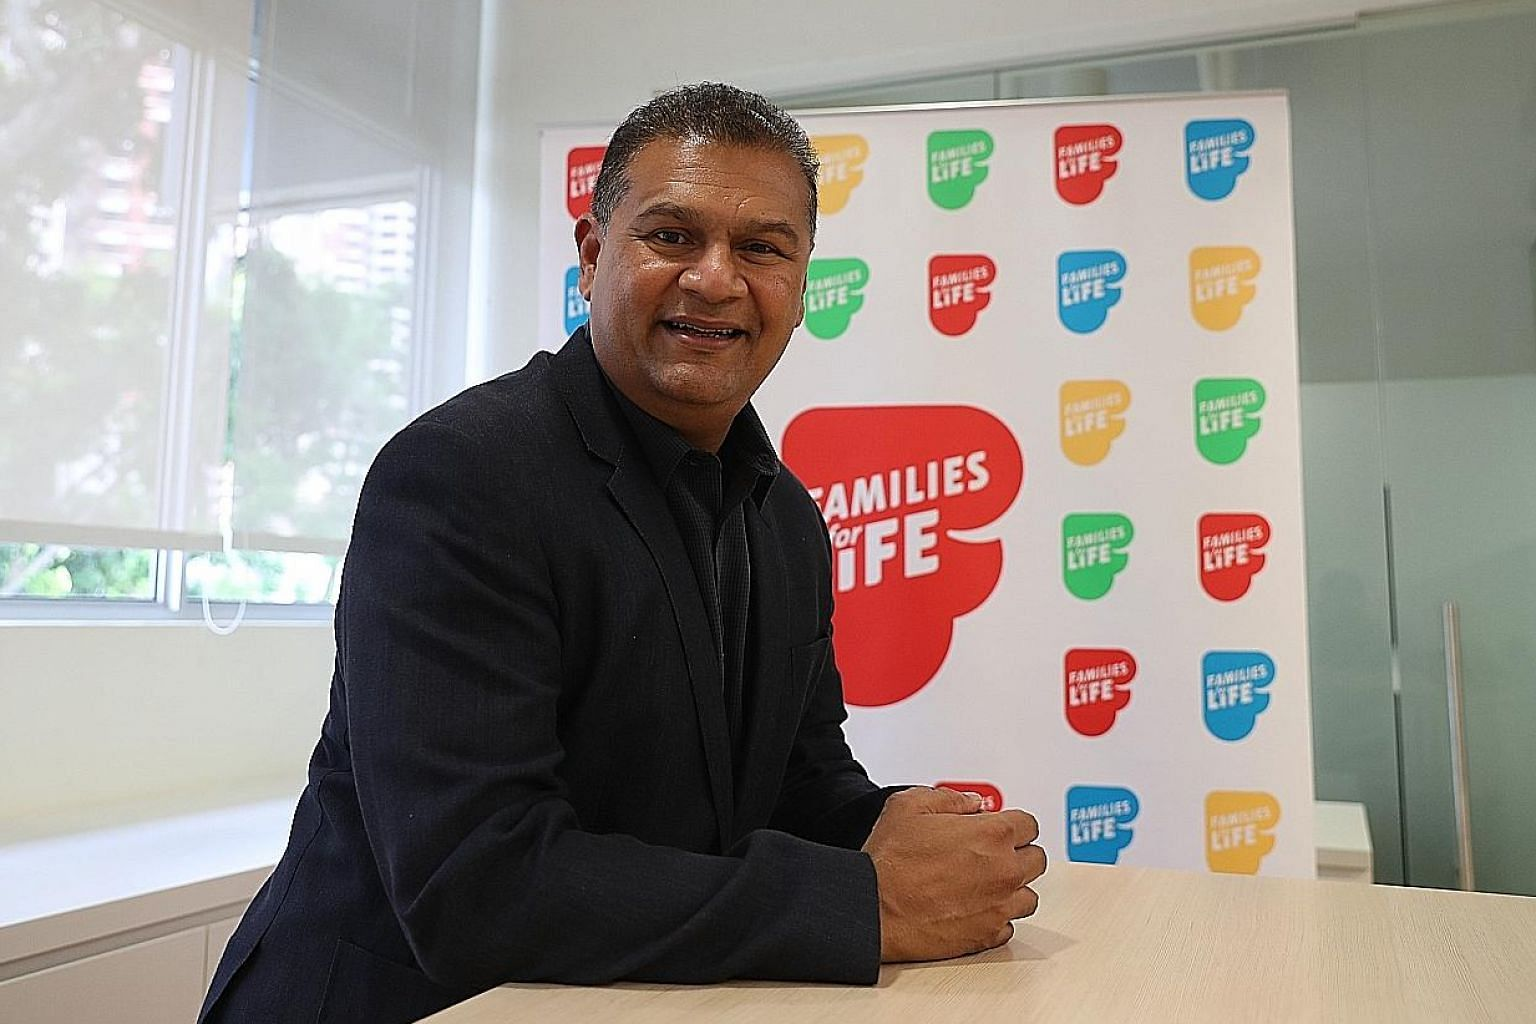 Families for Life Council chairman Ishak Ismail, 57, believes that fathers need to be more present in their children's lives. He shared that building a close relationship with his two daughters, aged 26 and 28, took time and effort, as well as creati